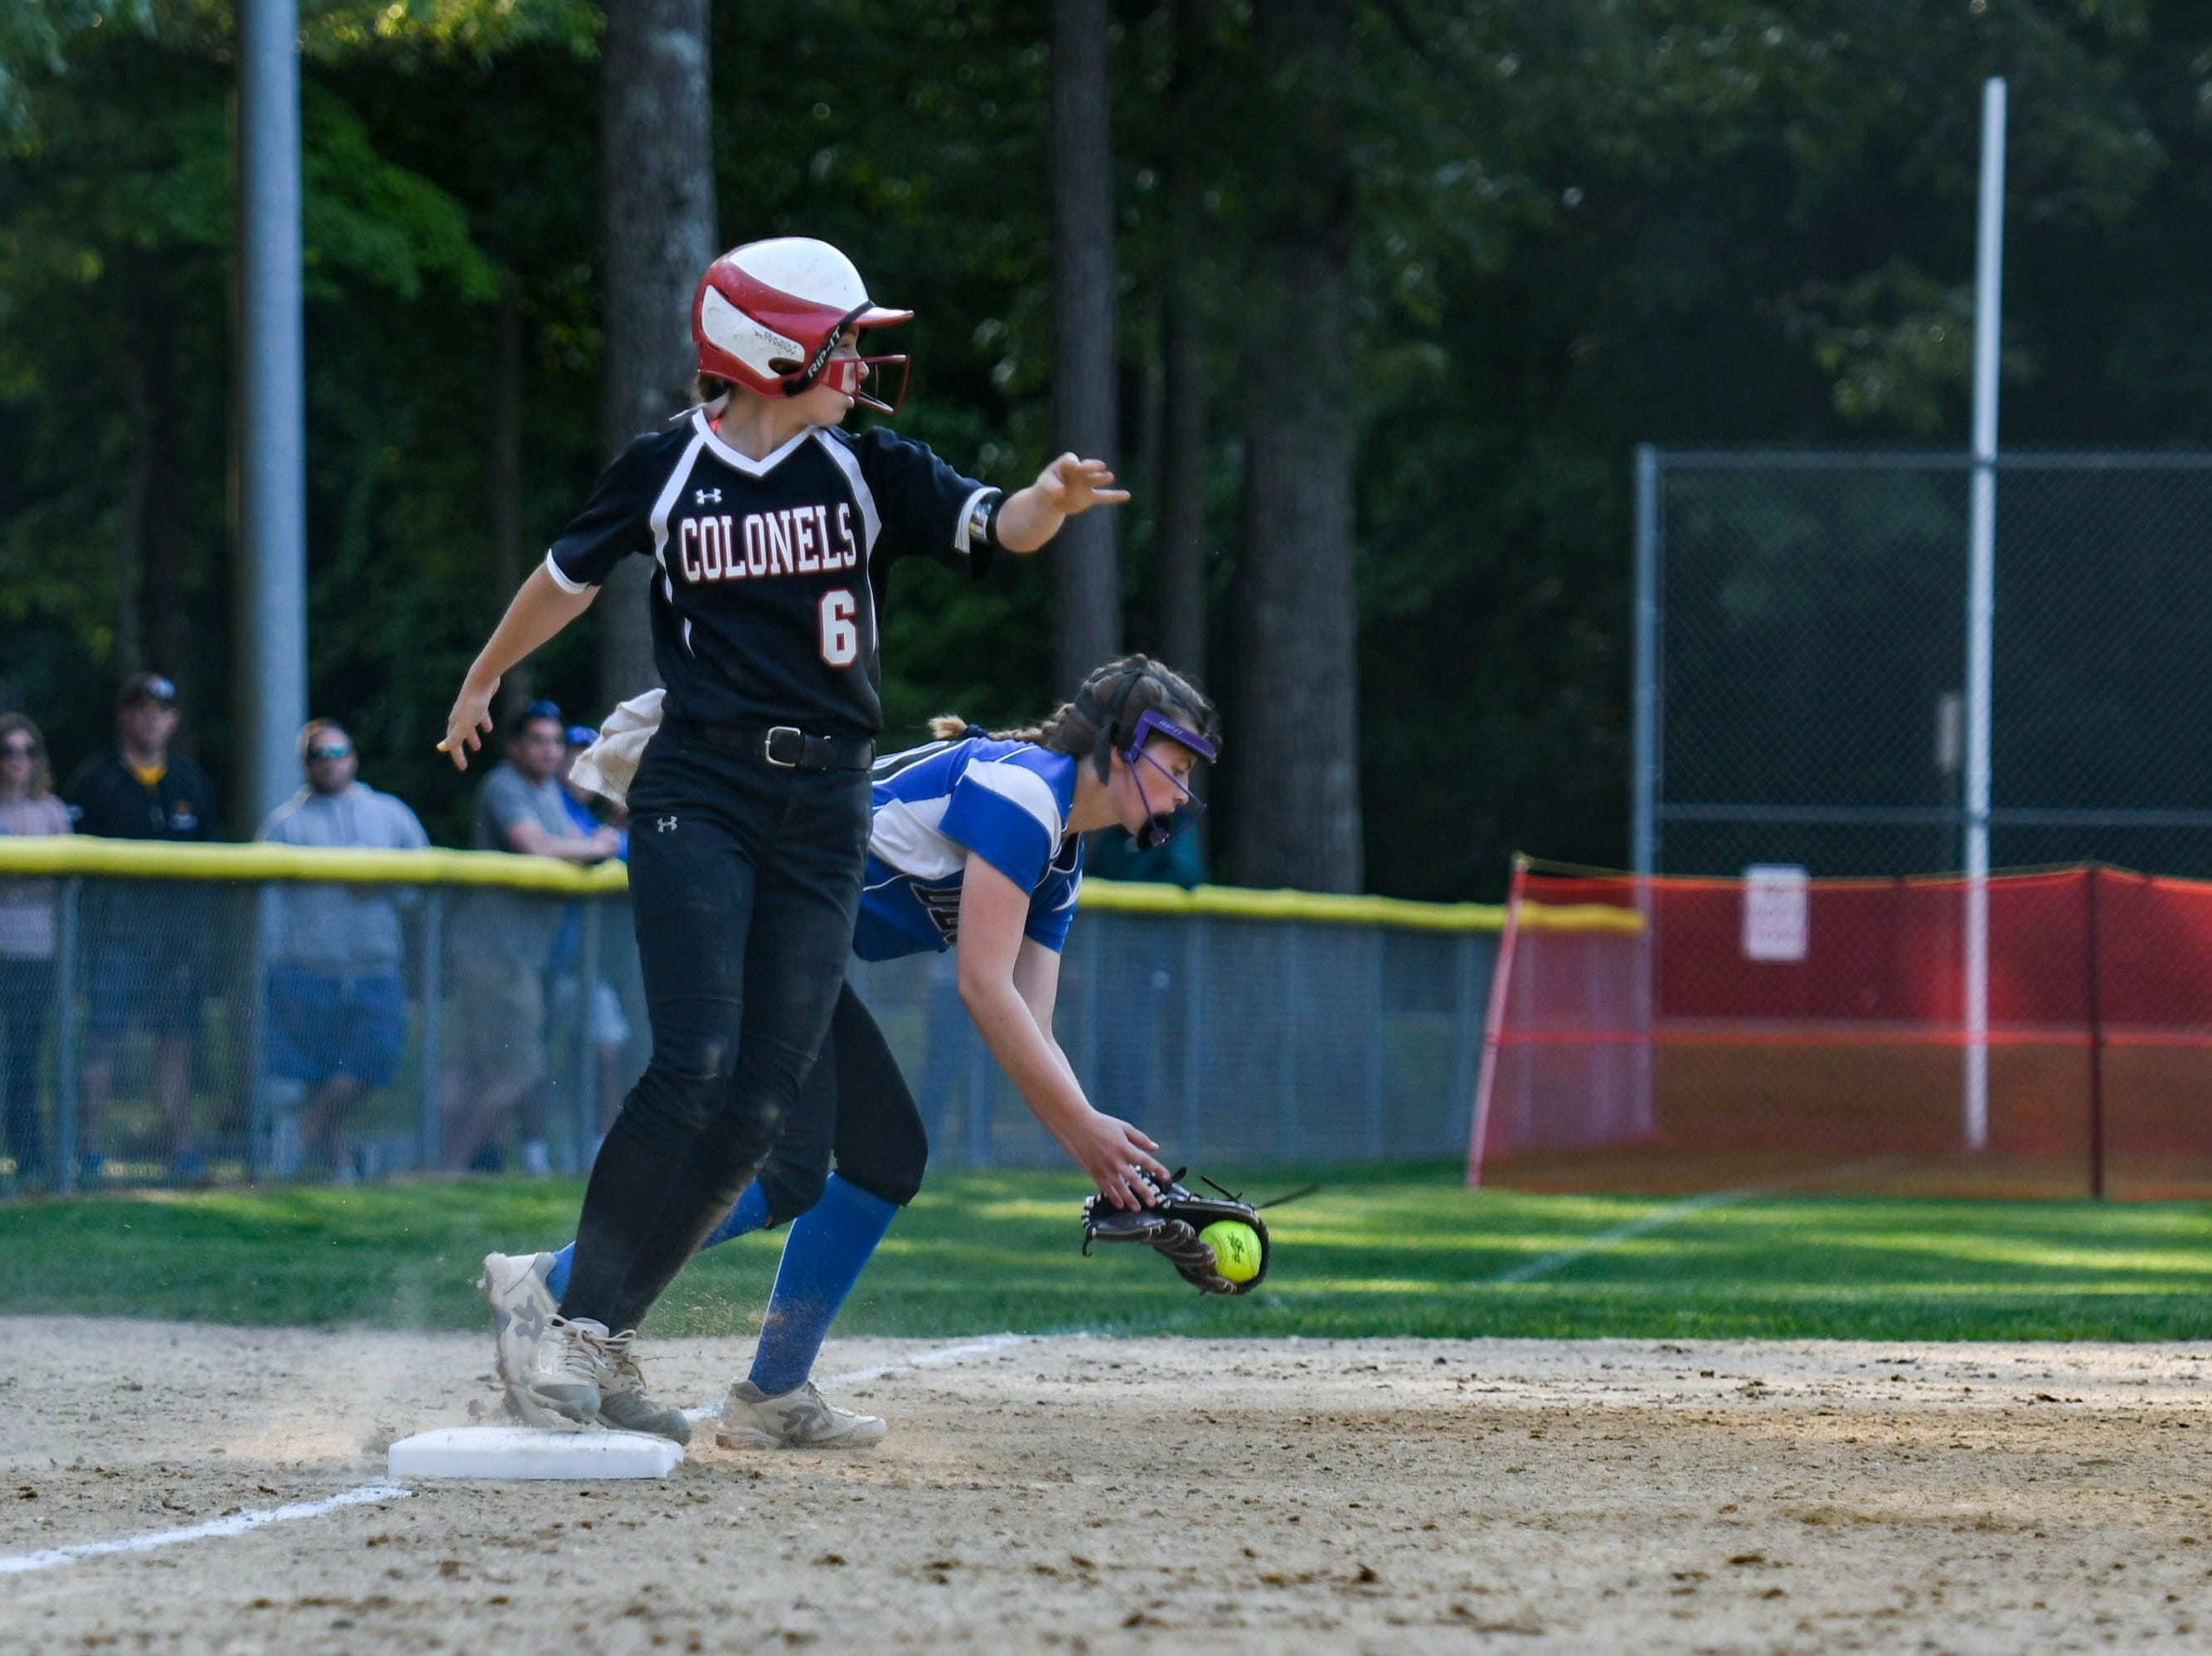 Colonel Richardson's Jen Larrimore (6) rounds third base against Decatur in the Bayside Softball Championship game on Wednesday, May 8, 2019. Decatur prevailed with a score of 4 to 1.